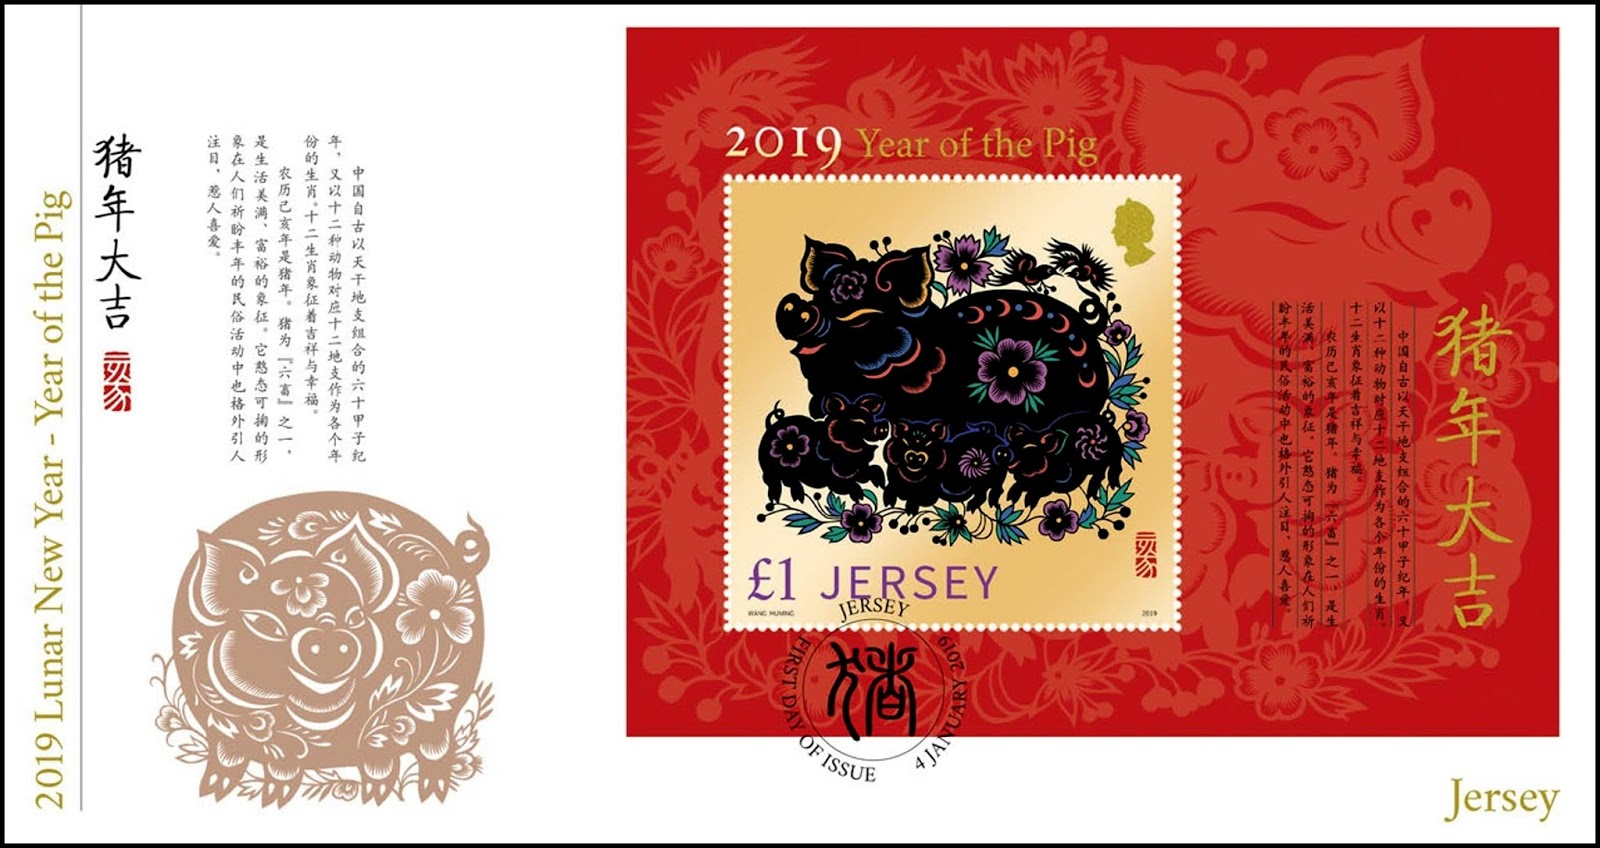 Jersey - Year of the Pig (January 4, 2019) souvenir sheet first day cover